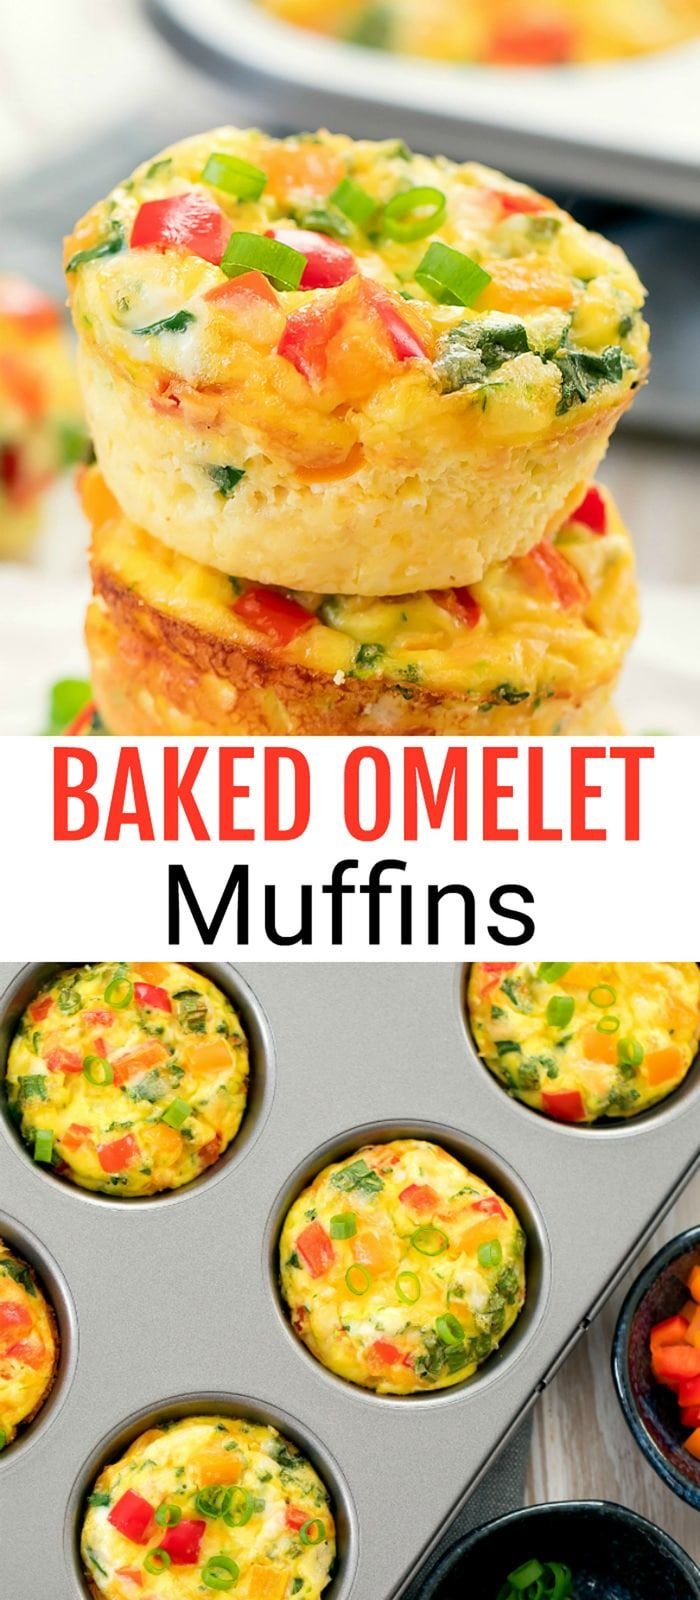 Omelet Muffins images